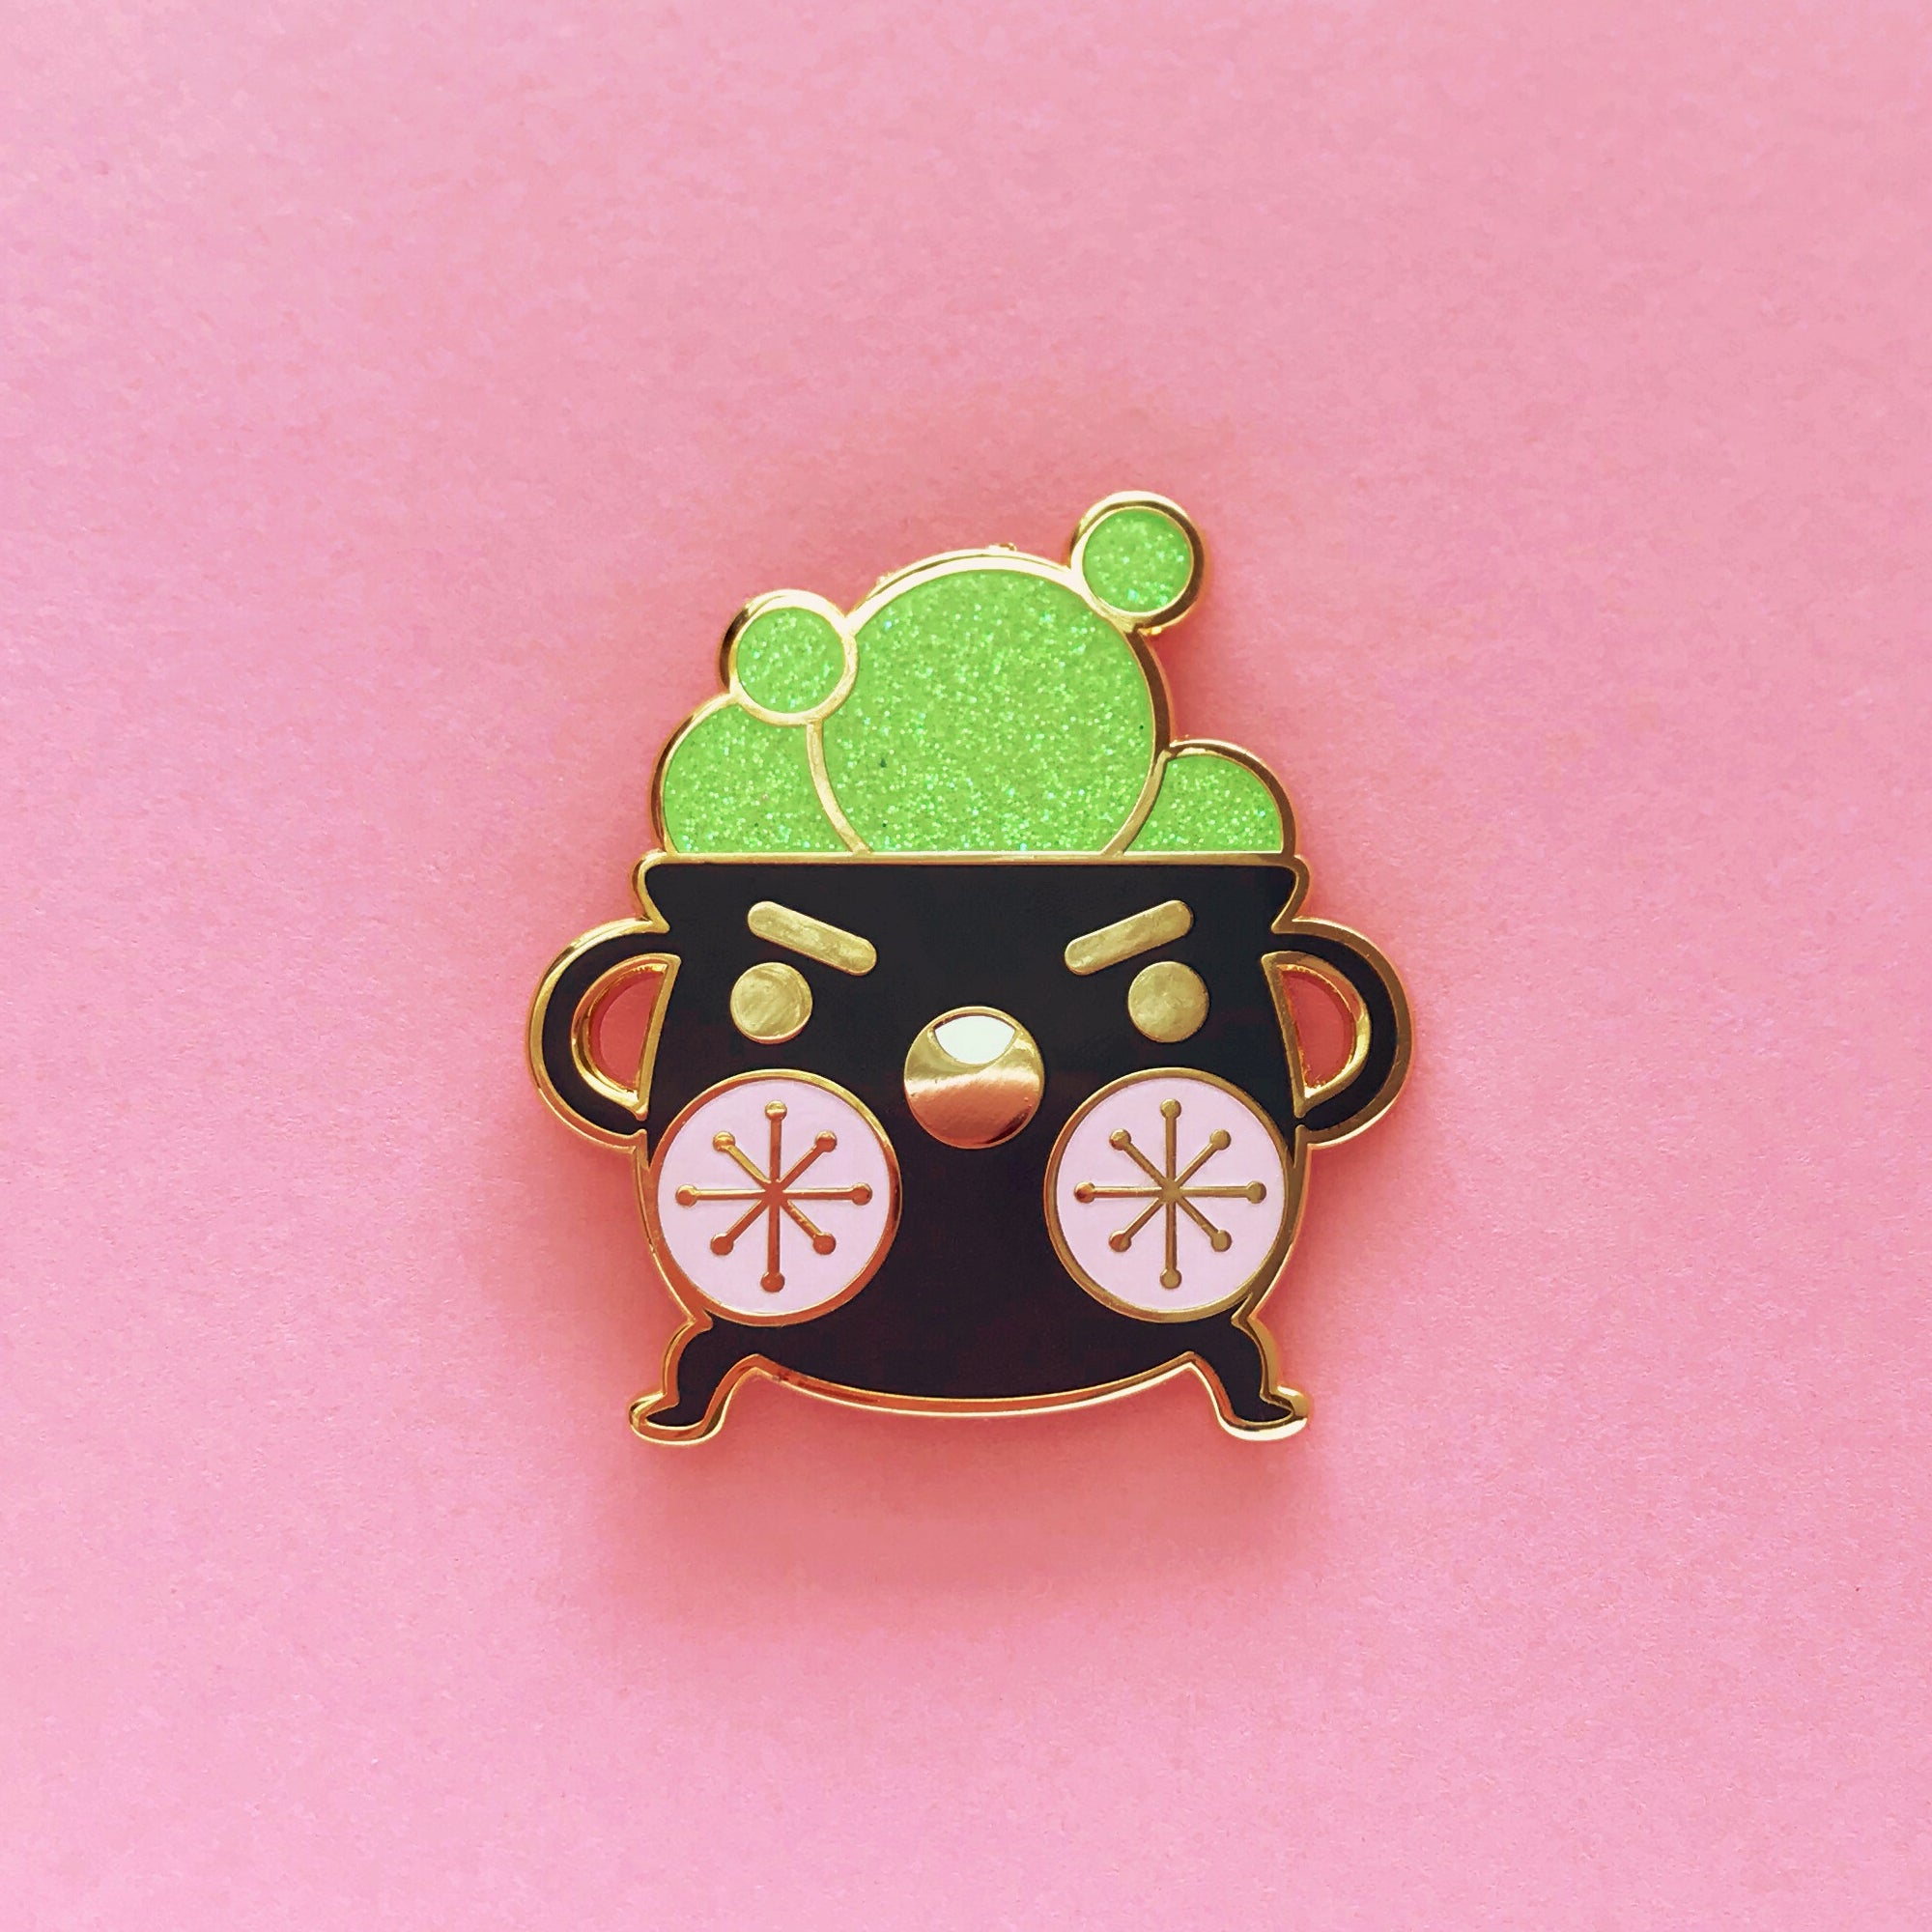 Sass Pot Enamel Pin • Undead Dee + The Pink Samurai - Enamel Pin - The Pink Samurai